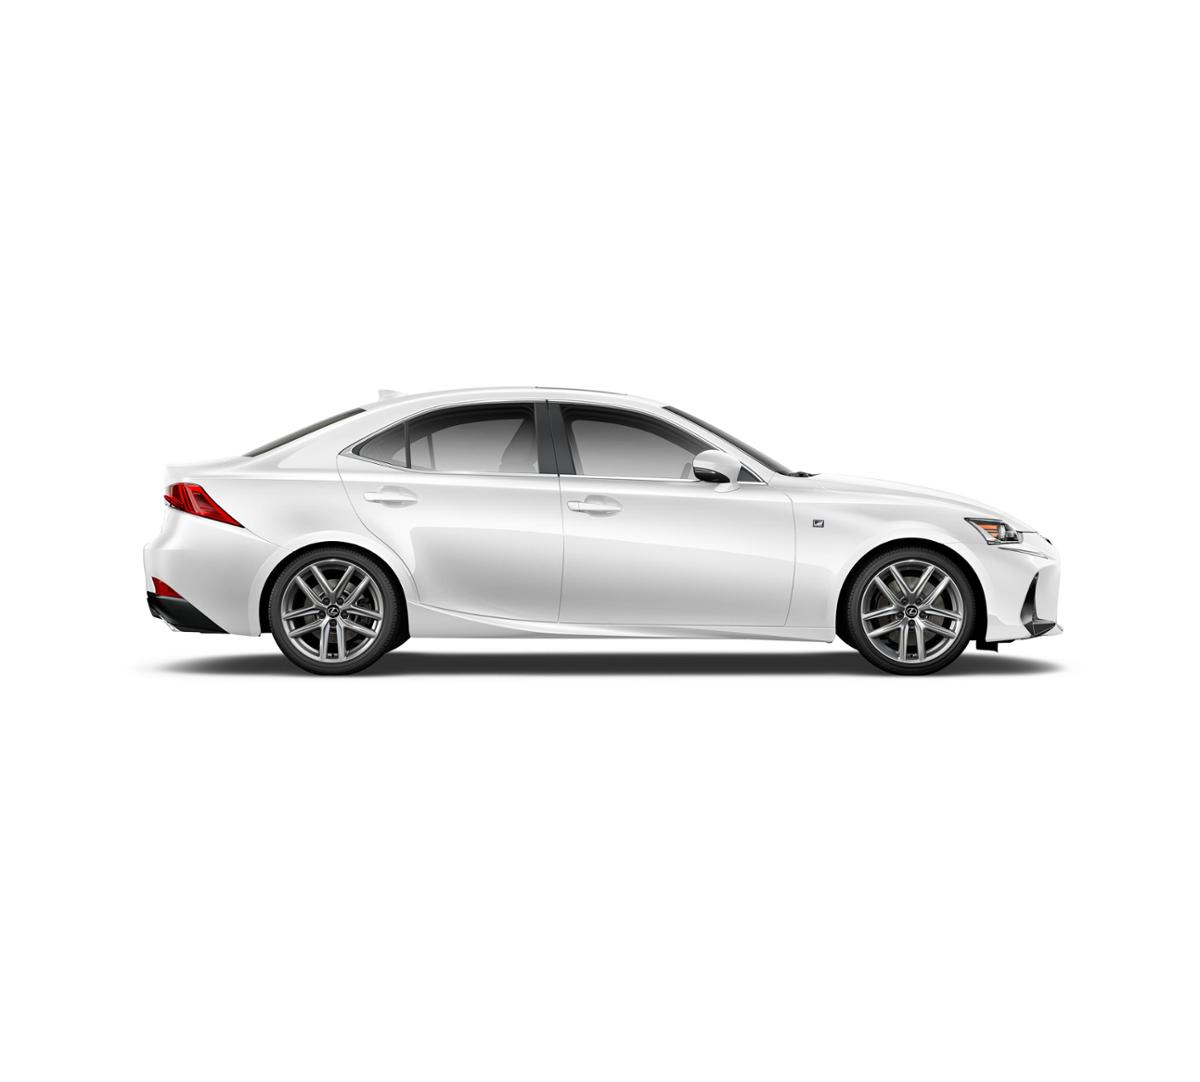 New 2019 Lexus IS 300 For Sale In Escondido, CA